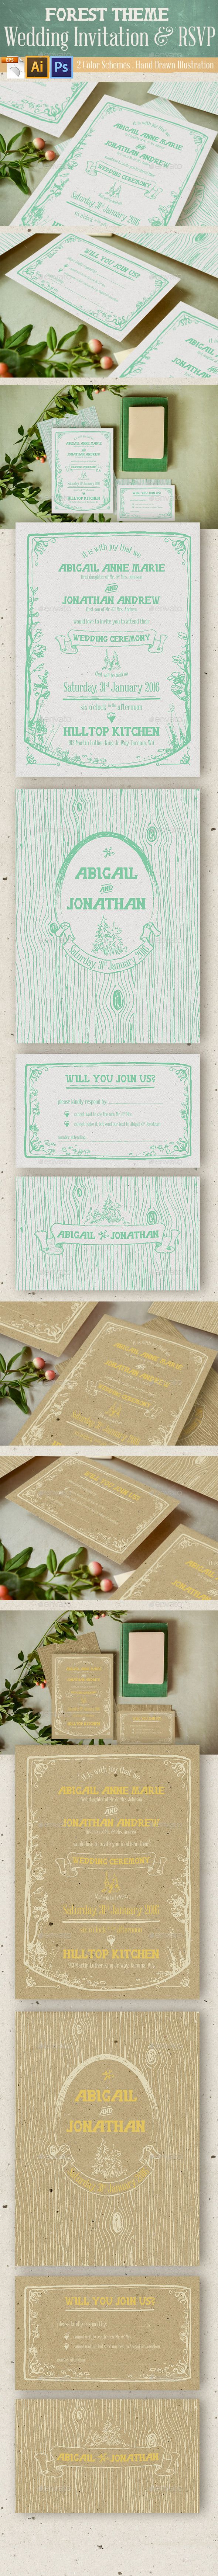 Forest Theme Wedding Invitation Forest Theme Weddings Forest